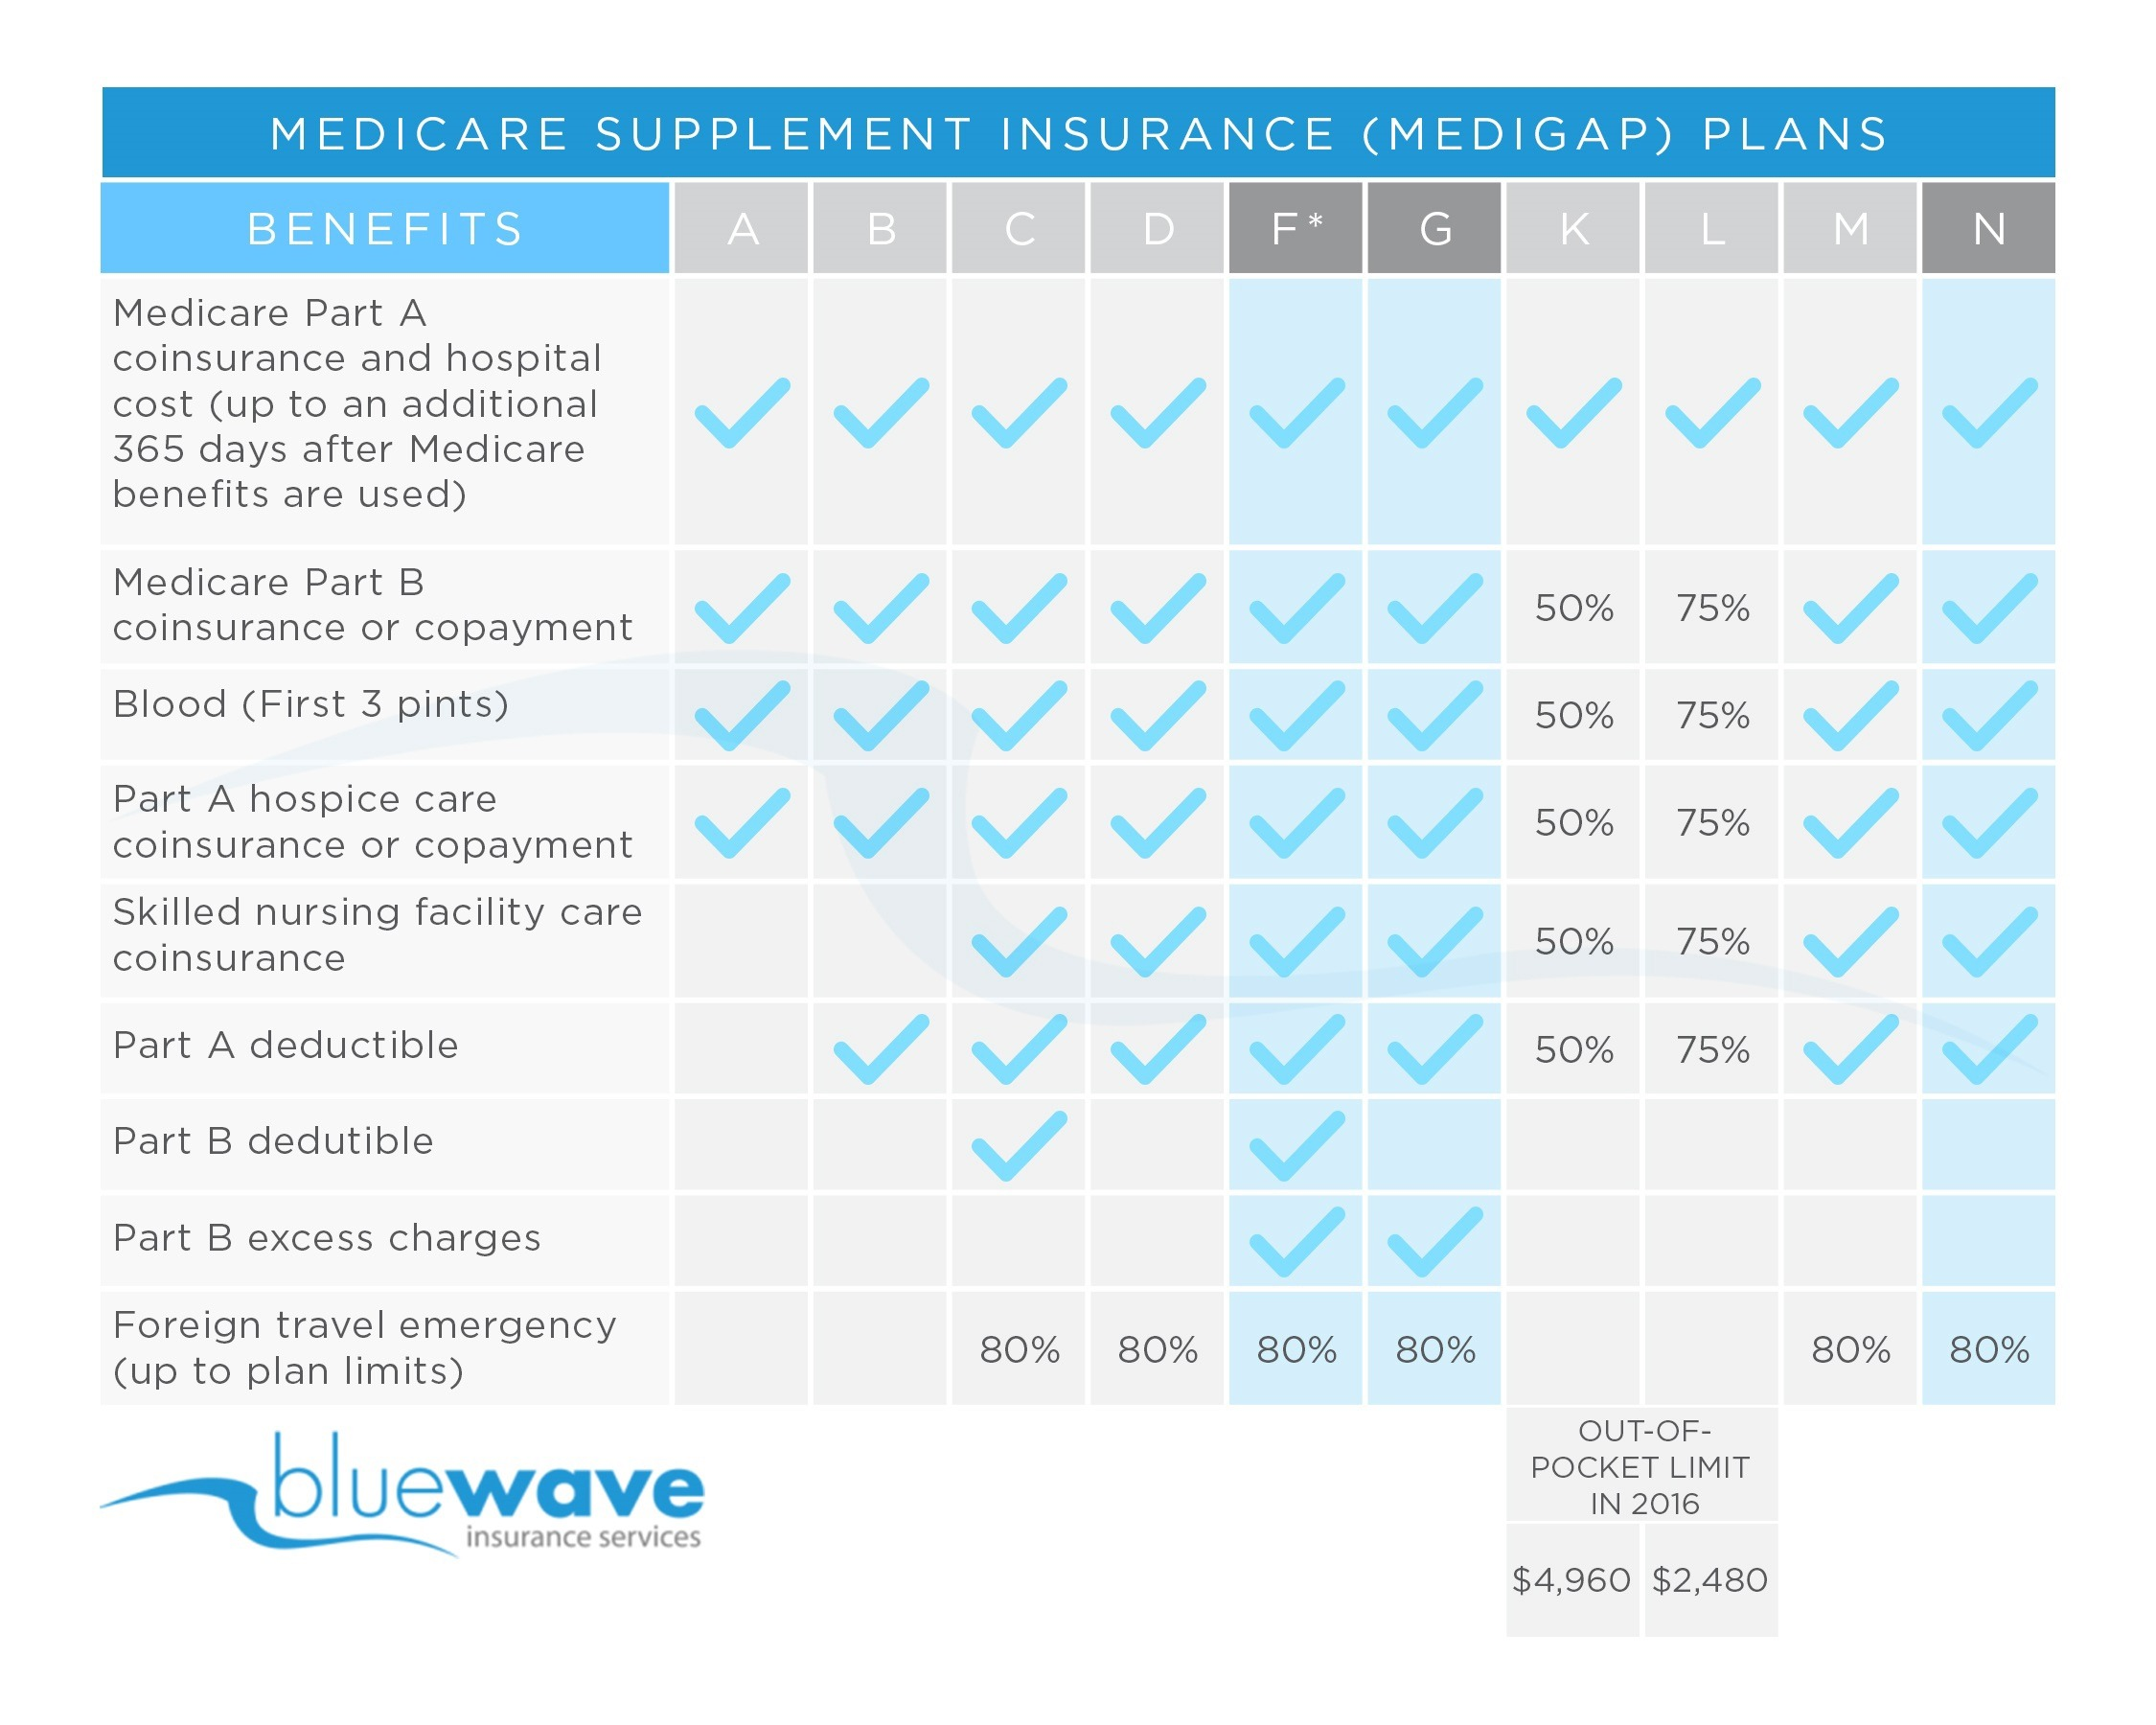 Bankers Life Medicare Supplement Insurance Review